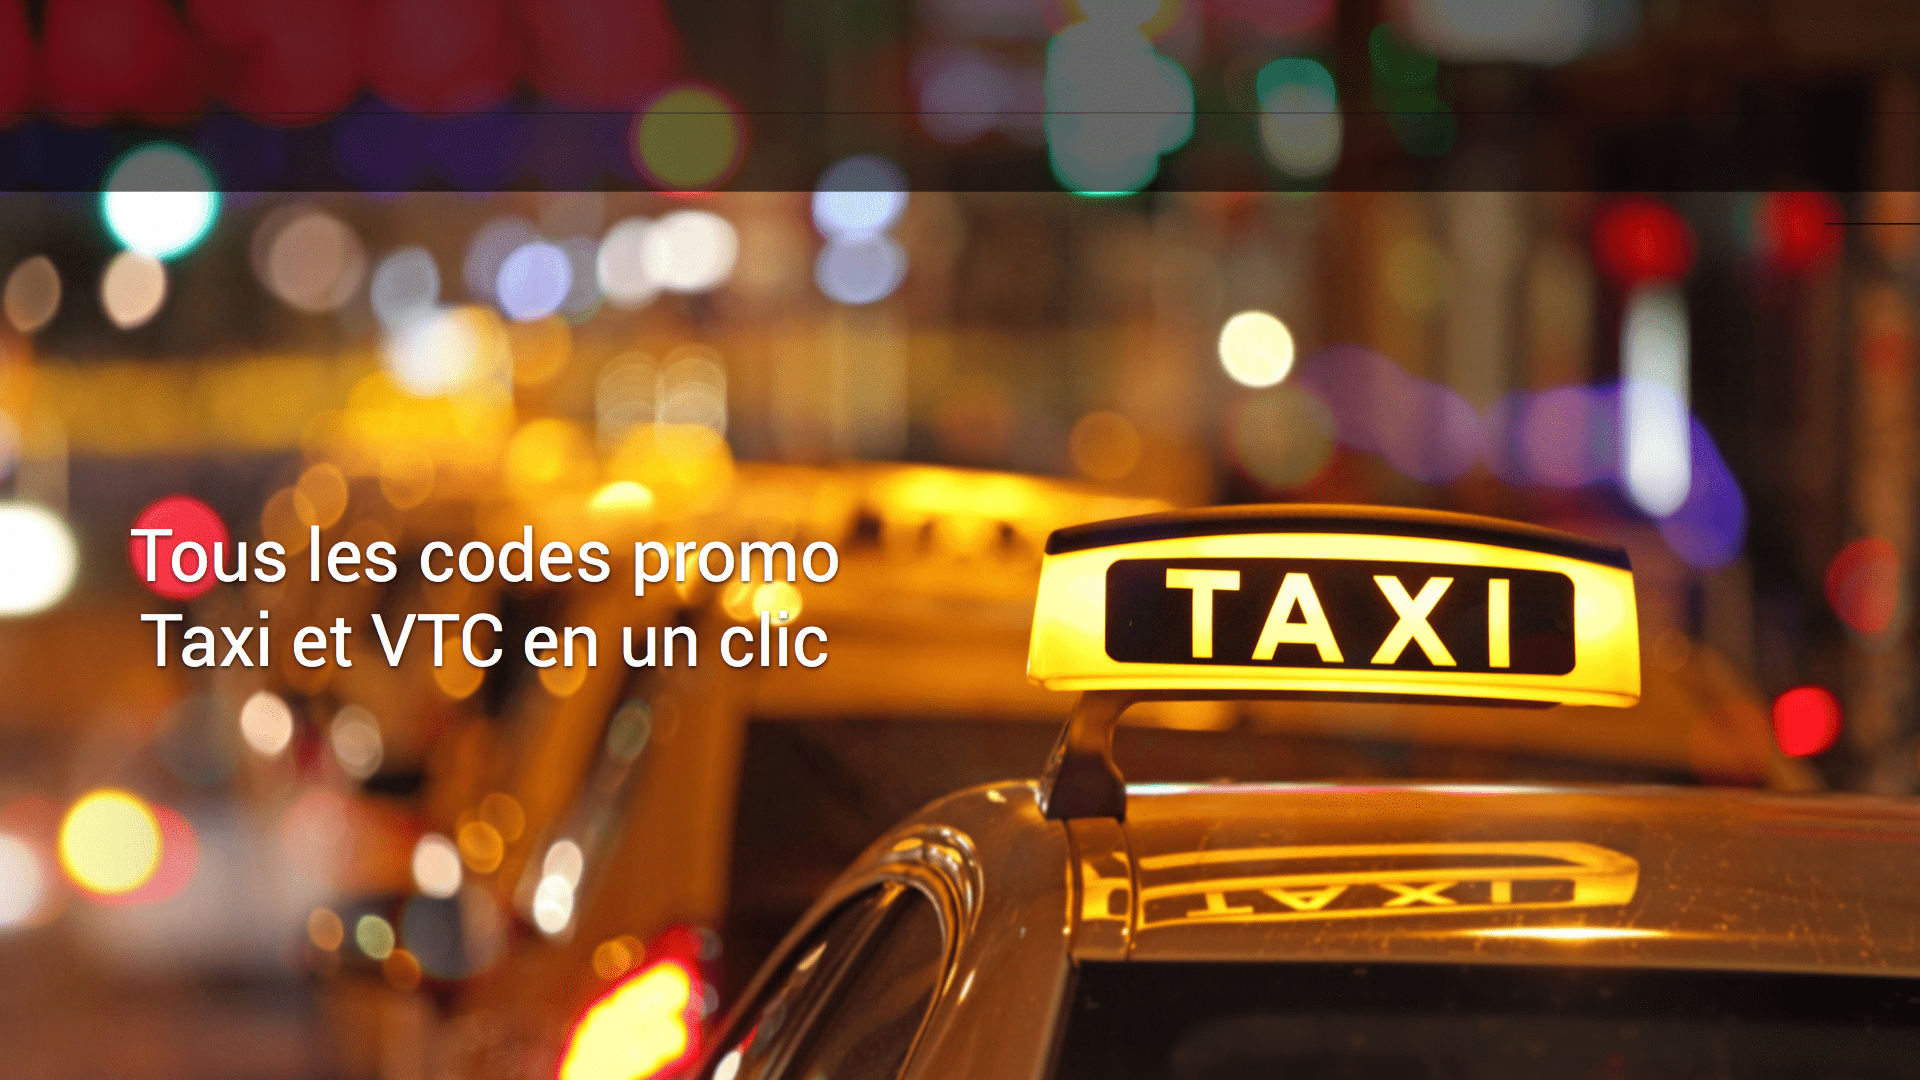 Réduction et promos | Taxis et VTC